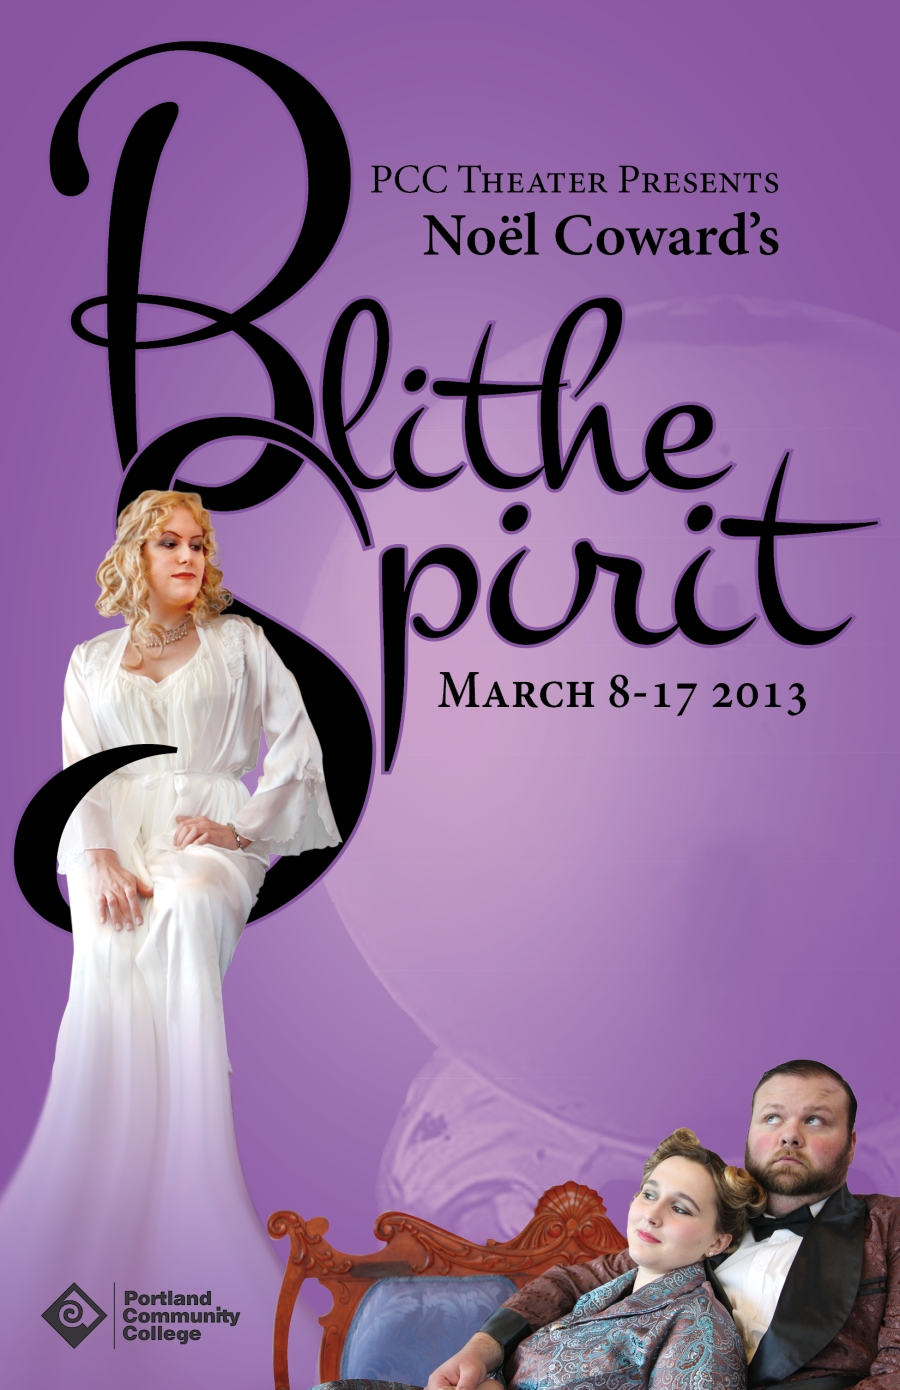 Opens March 8 at PCC Sylvania.